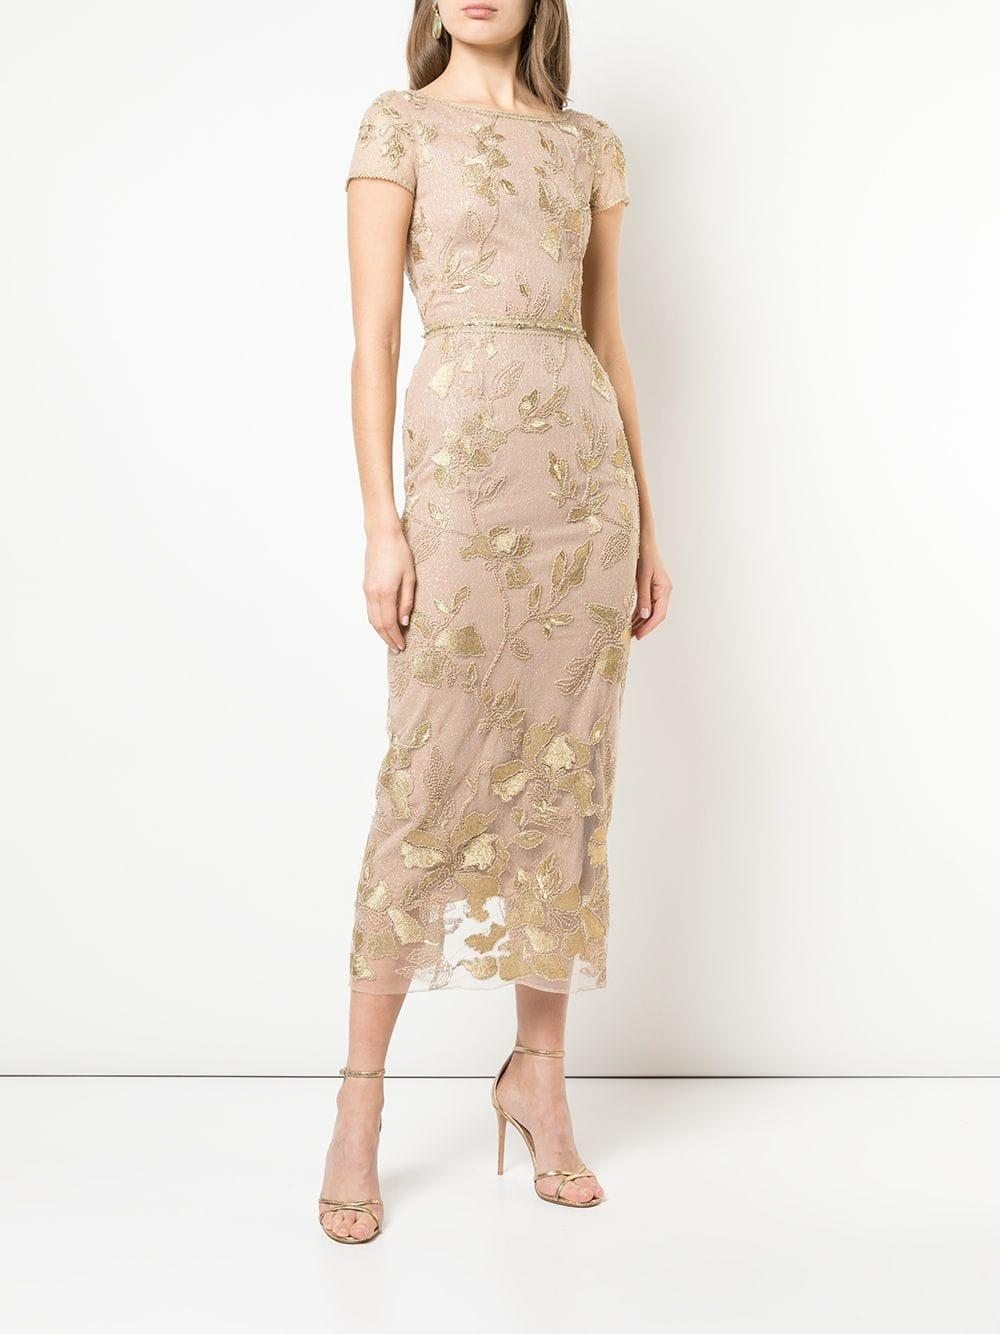 99efa5d8 Marchesa notte Floral Embroidered Evening Dress in Metallic - Lyst